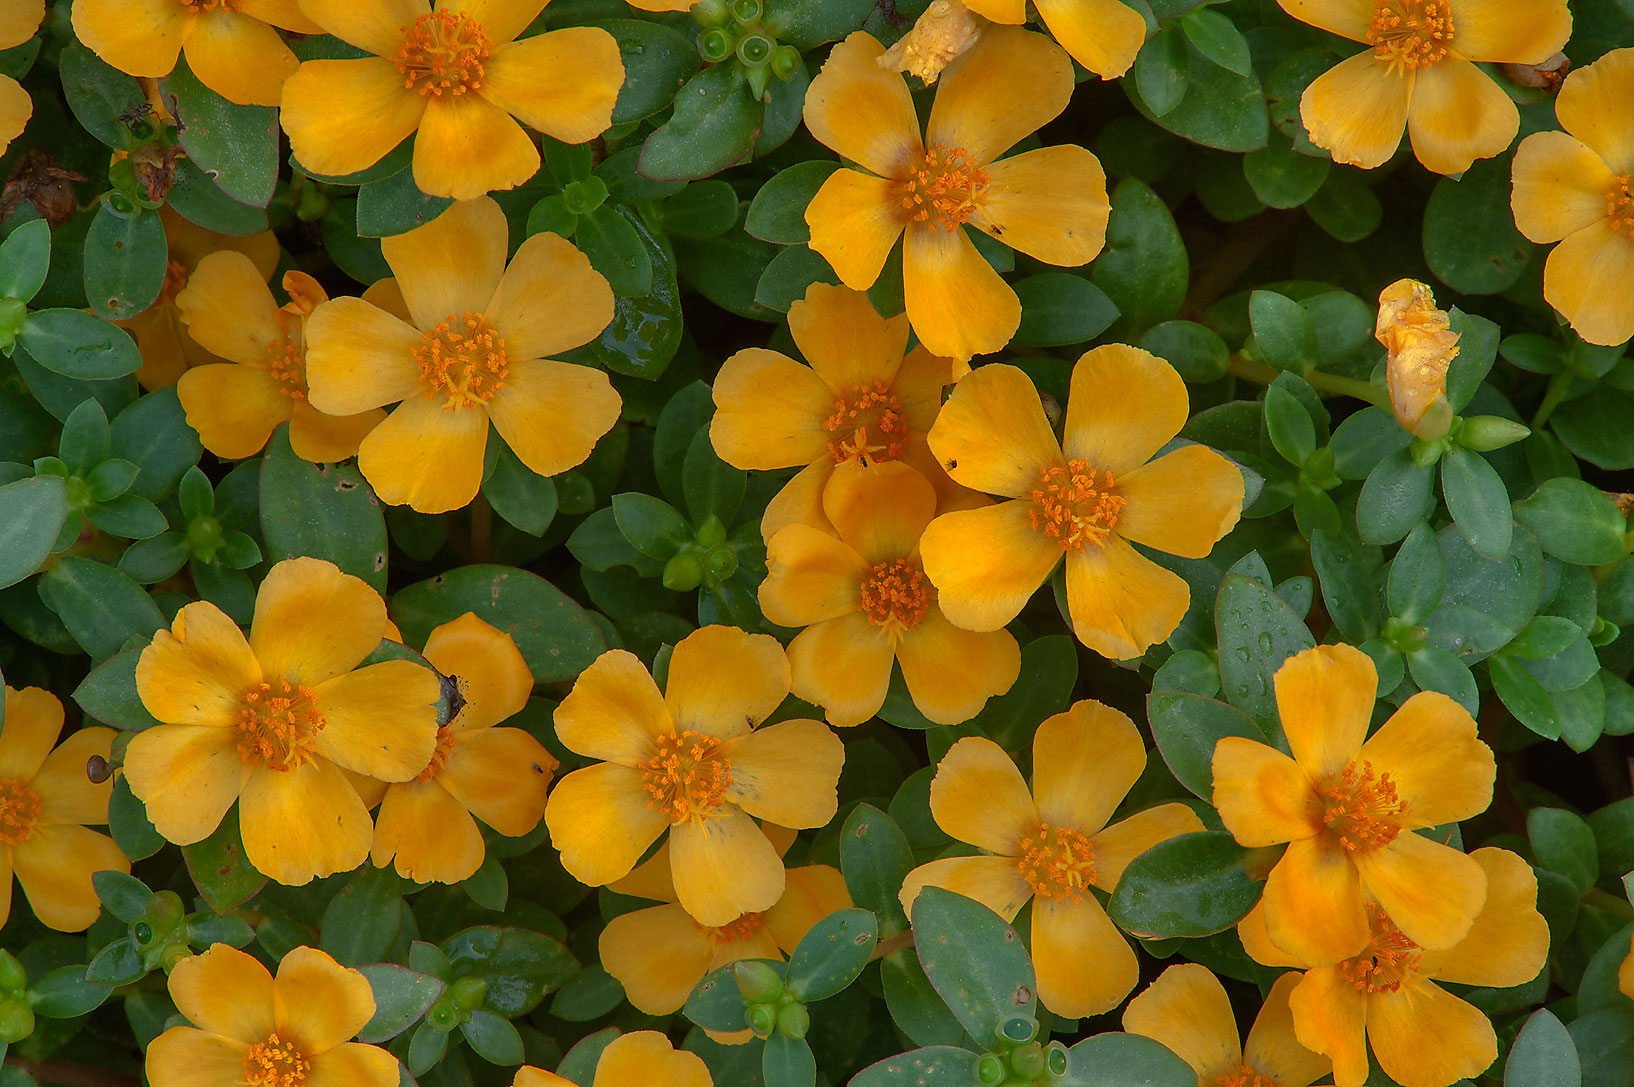 Yellow flowers of portulaca in Mercer Arboretum...Gardens. Humble (Houston area), Texas